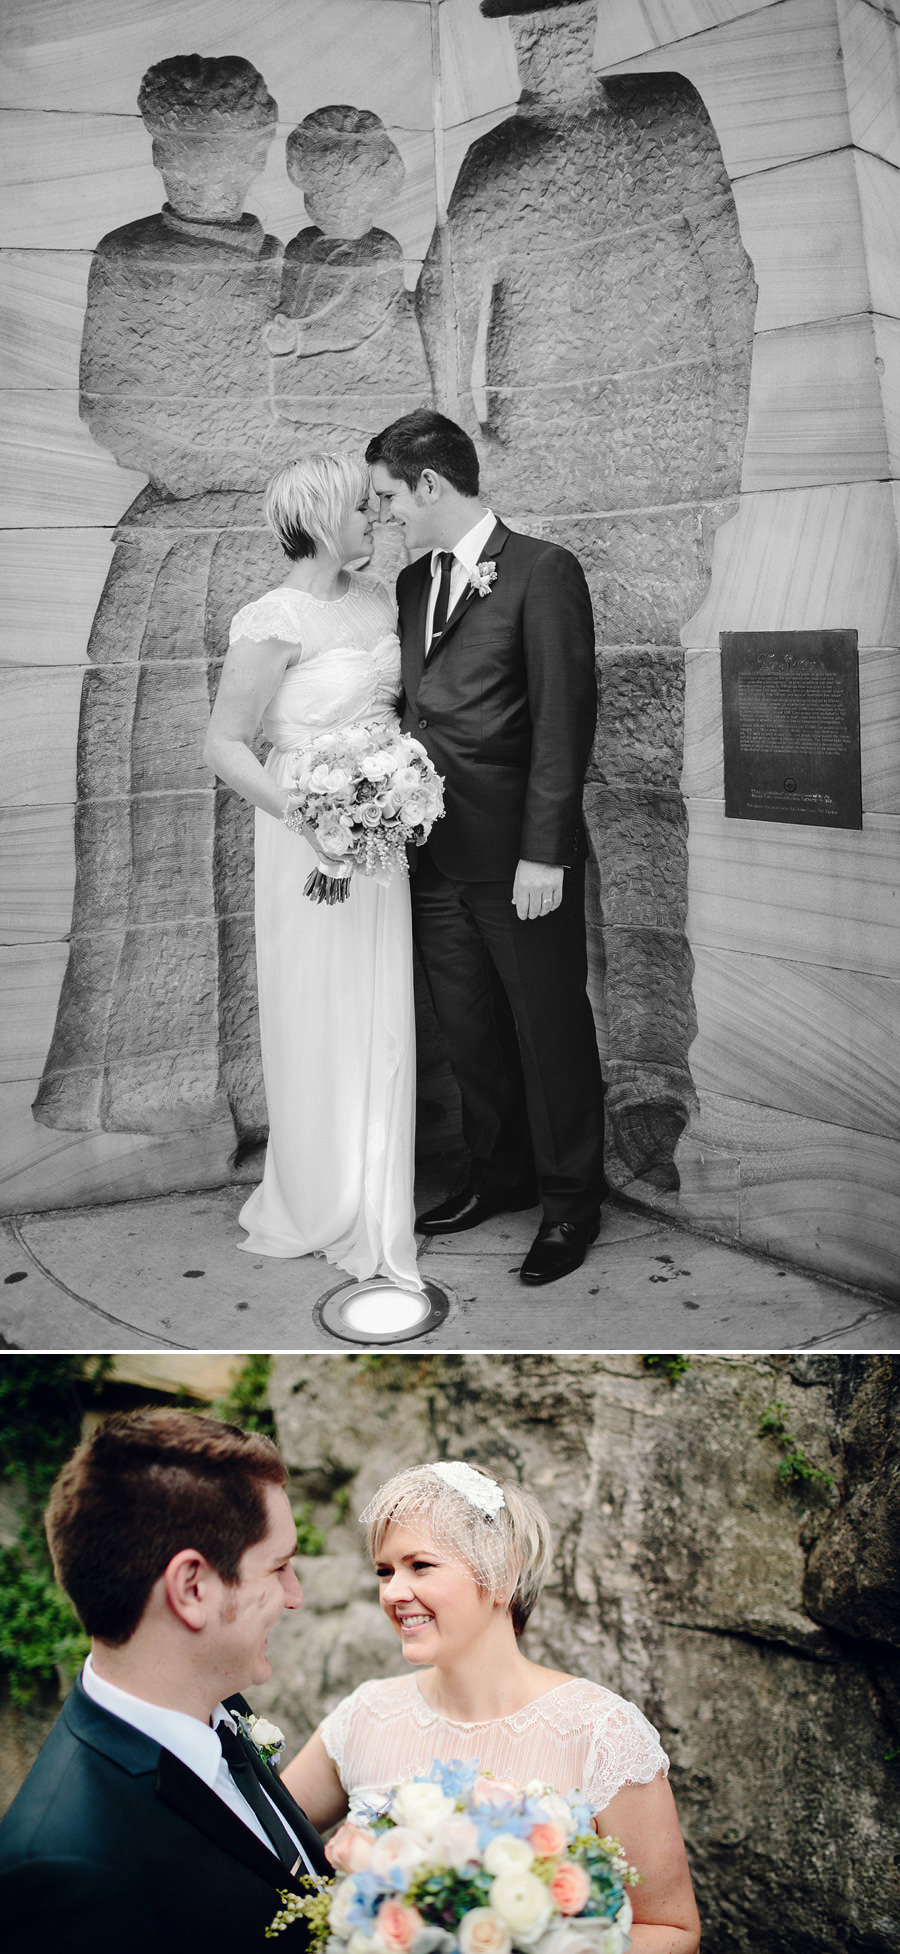 The Rocks Wedding Photography: Bride & Groom portraits